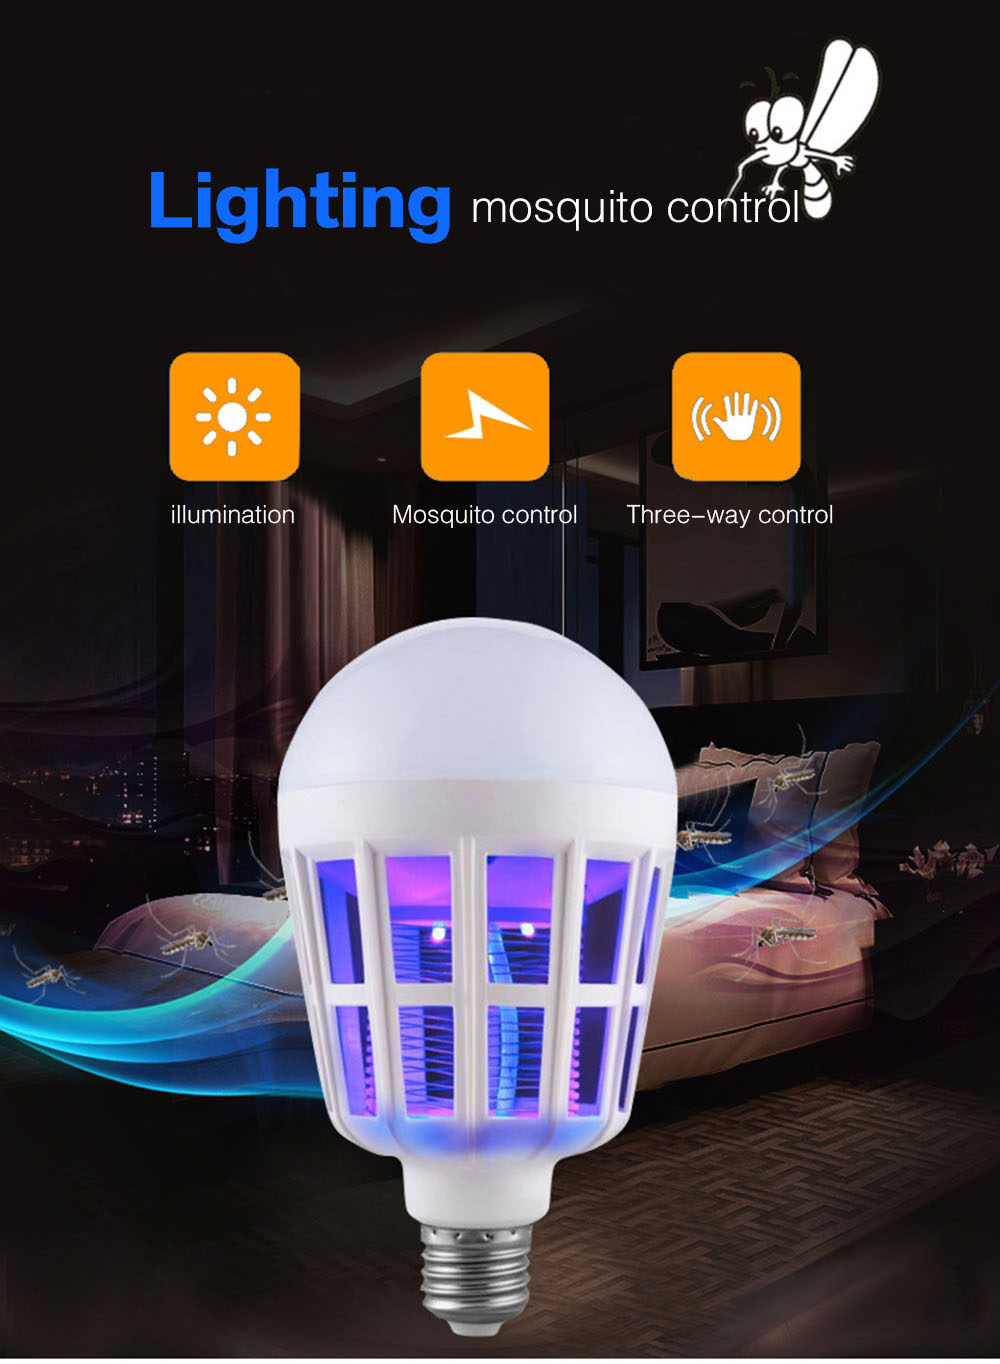 BRELONG LED Mosquito Home Lighting Bulb 15W 220V